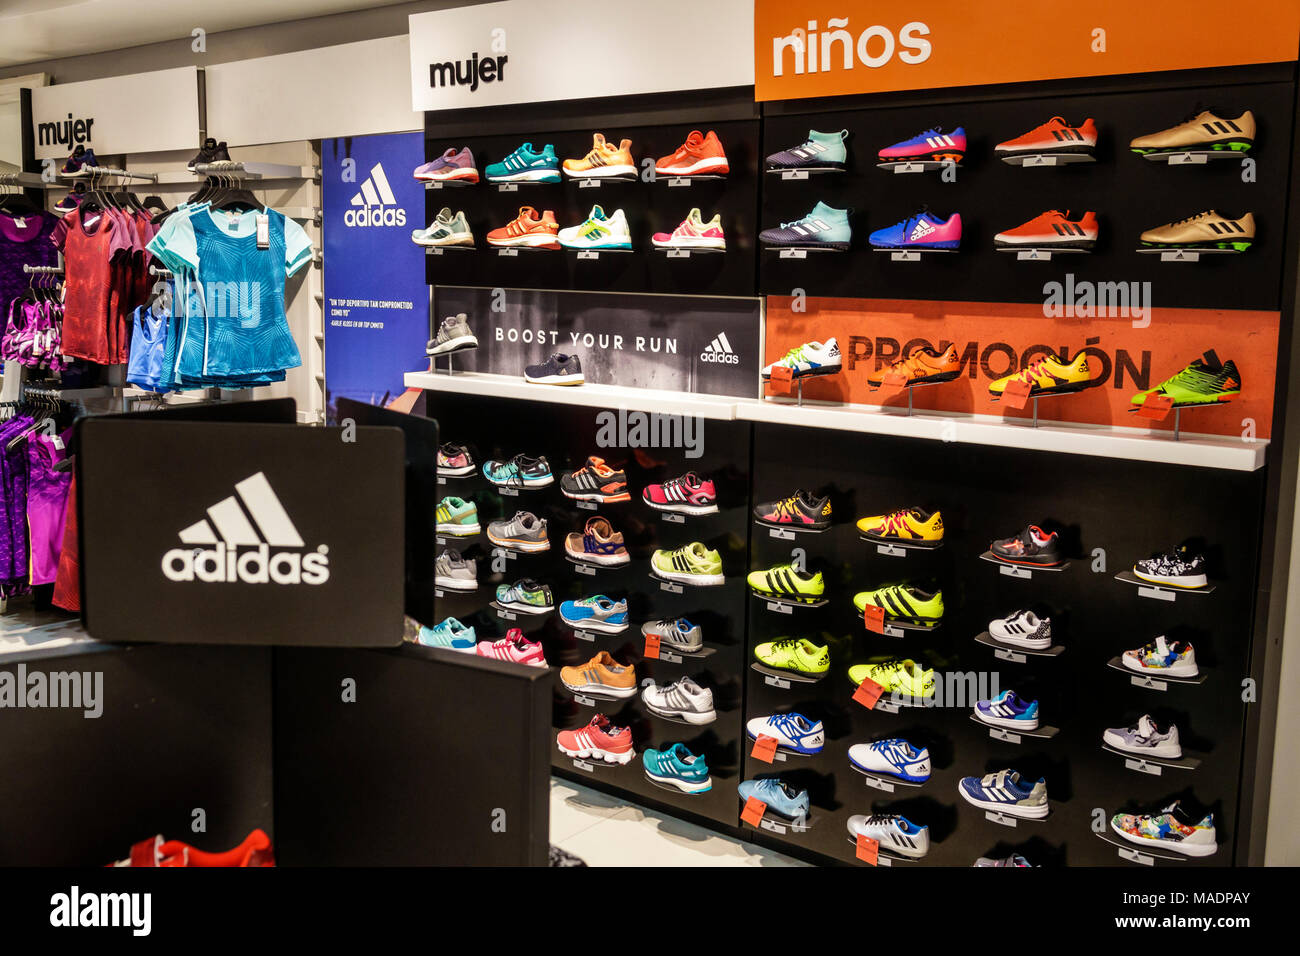 Verbs For Adidas Shoes